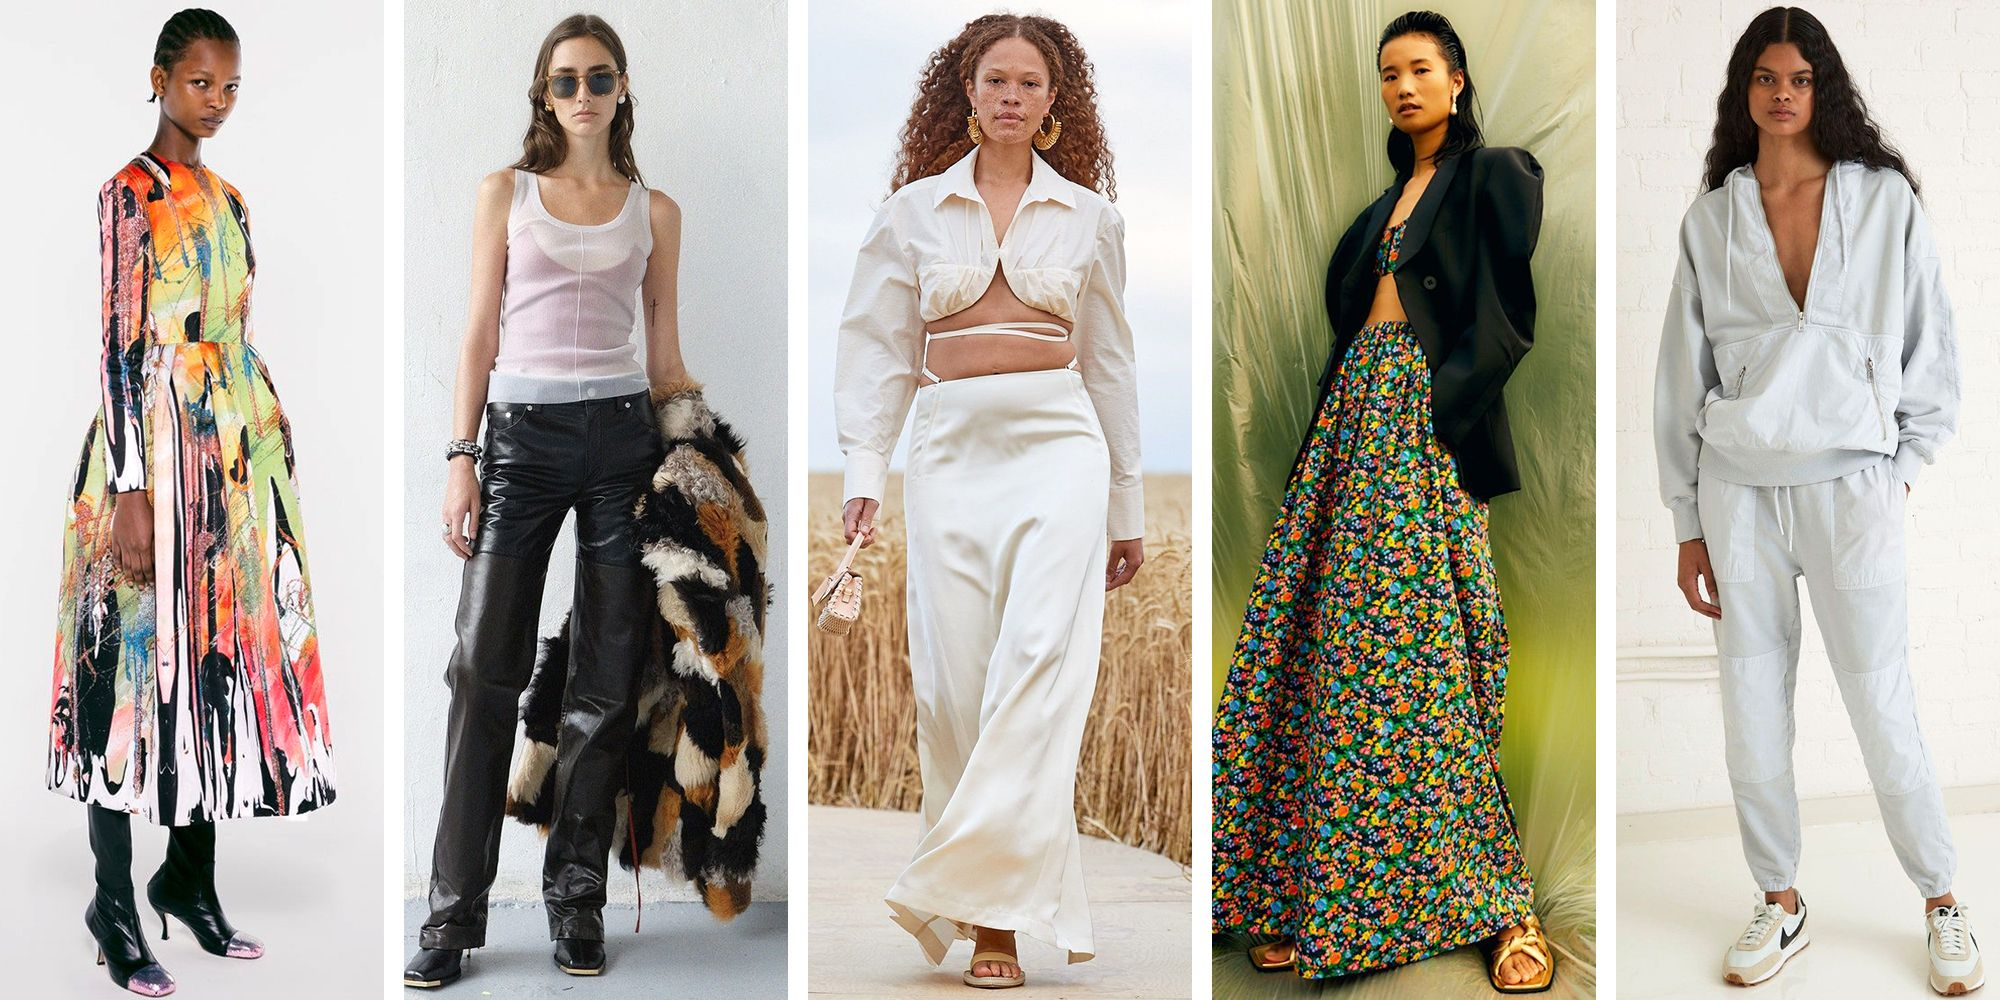 The Biggest Trends of Spring 8 So Far